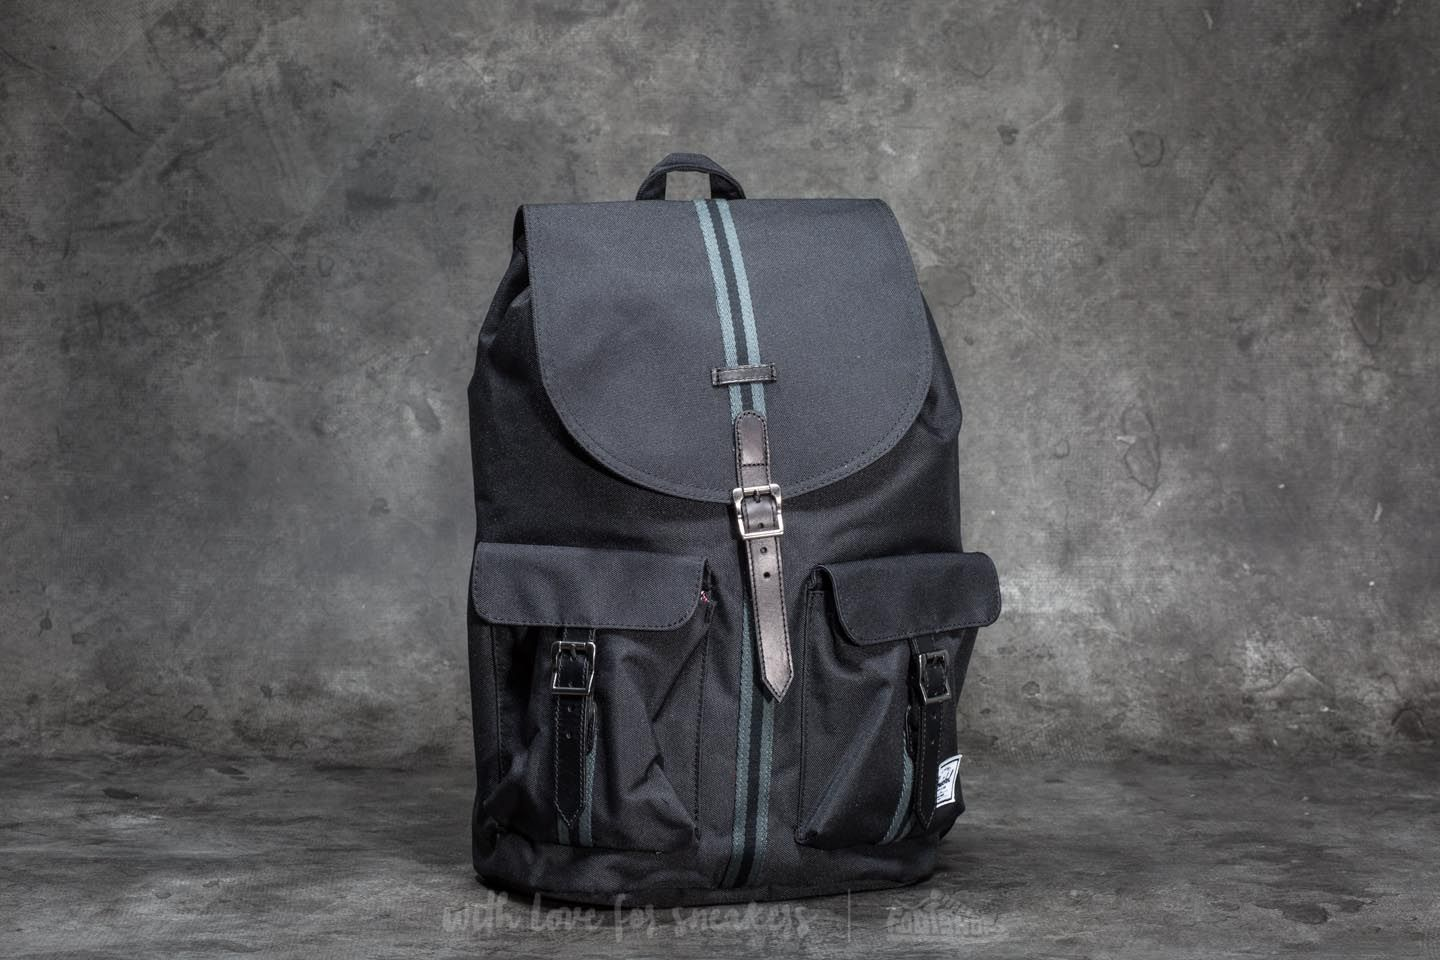 583d6c47770 Herschel Supply Co. Dawson Backpack Black  Dark Shadow